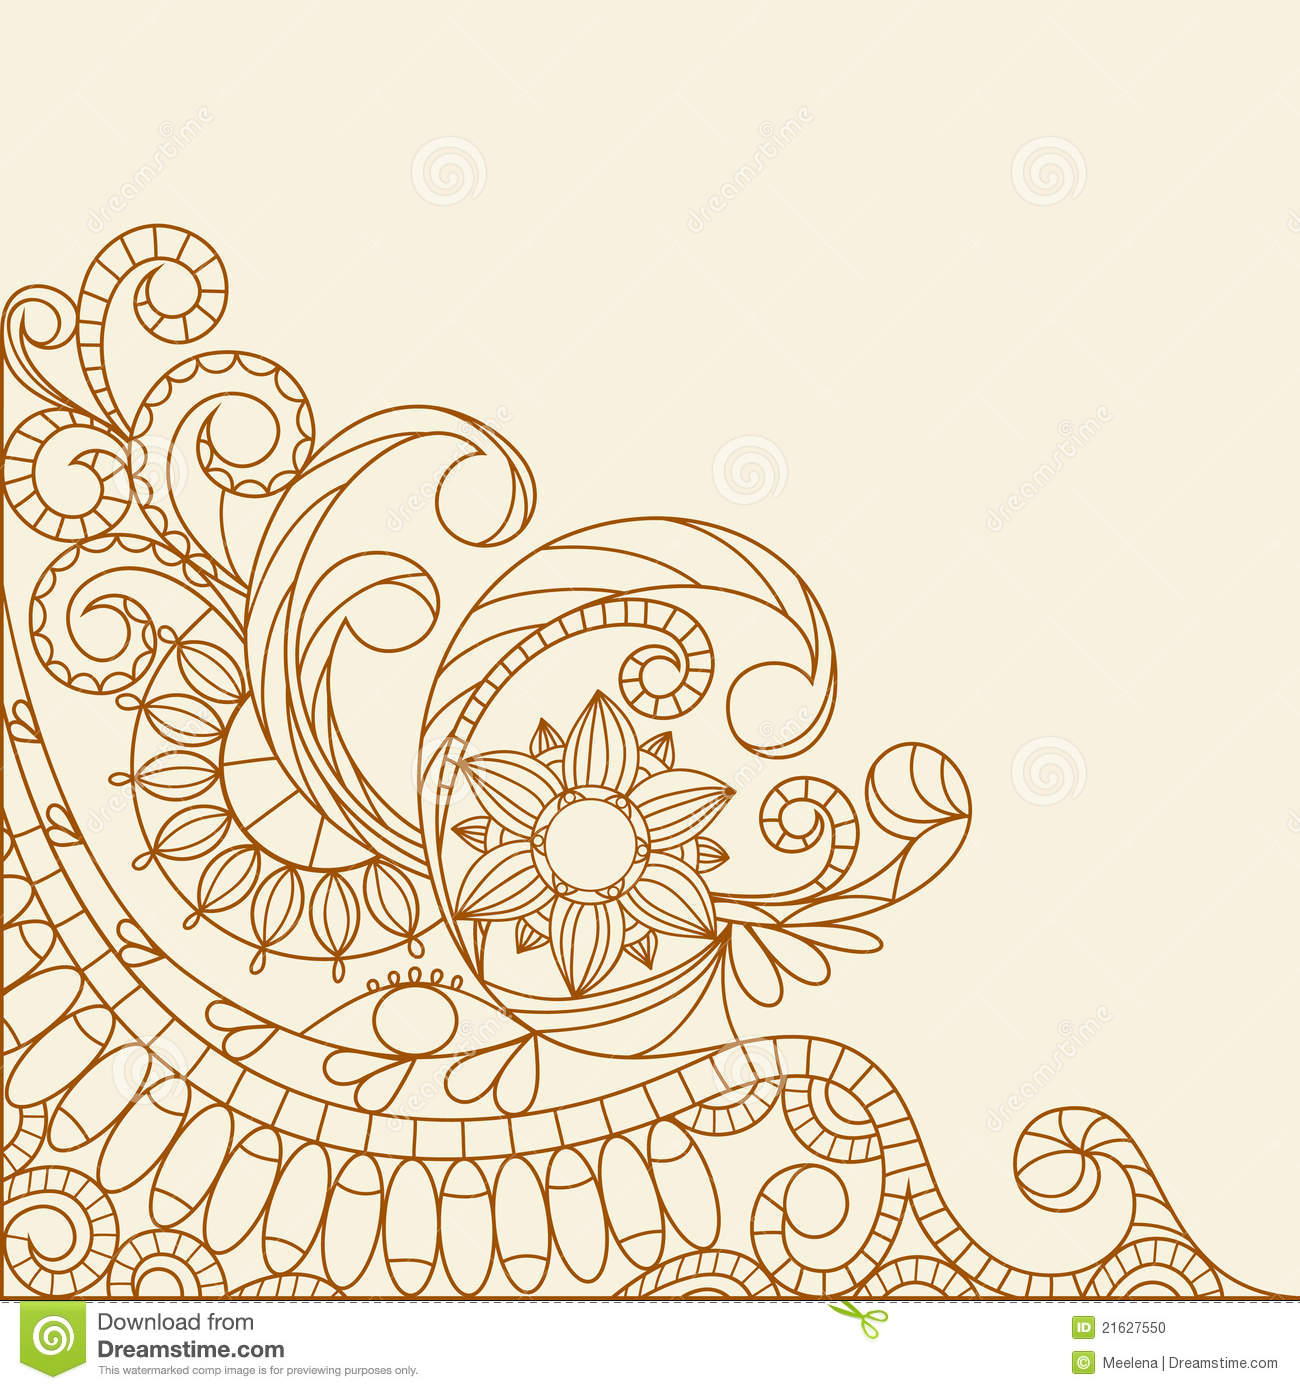 hand drawn abstract henna mehndi stock vector illustration of ornamental tattoo 21627550. Black Bedroom Furniture Sets. Home Design Ideas